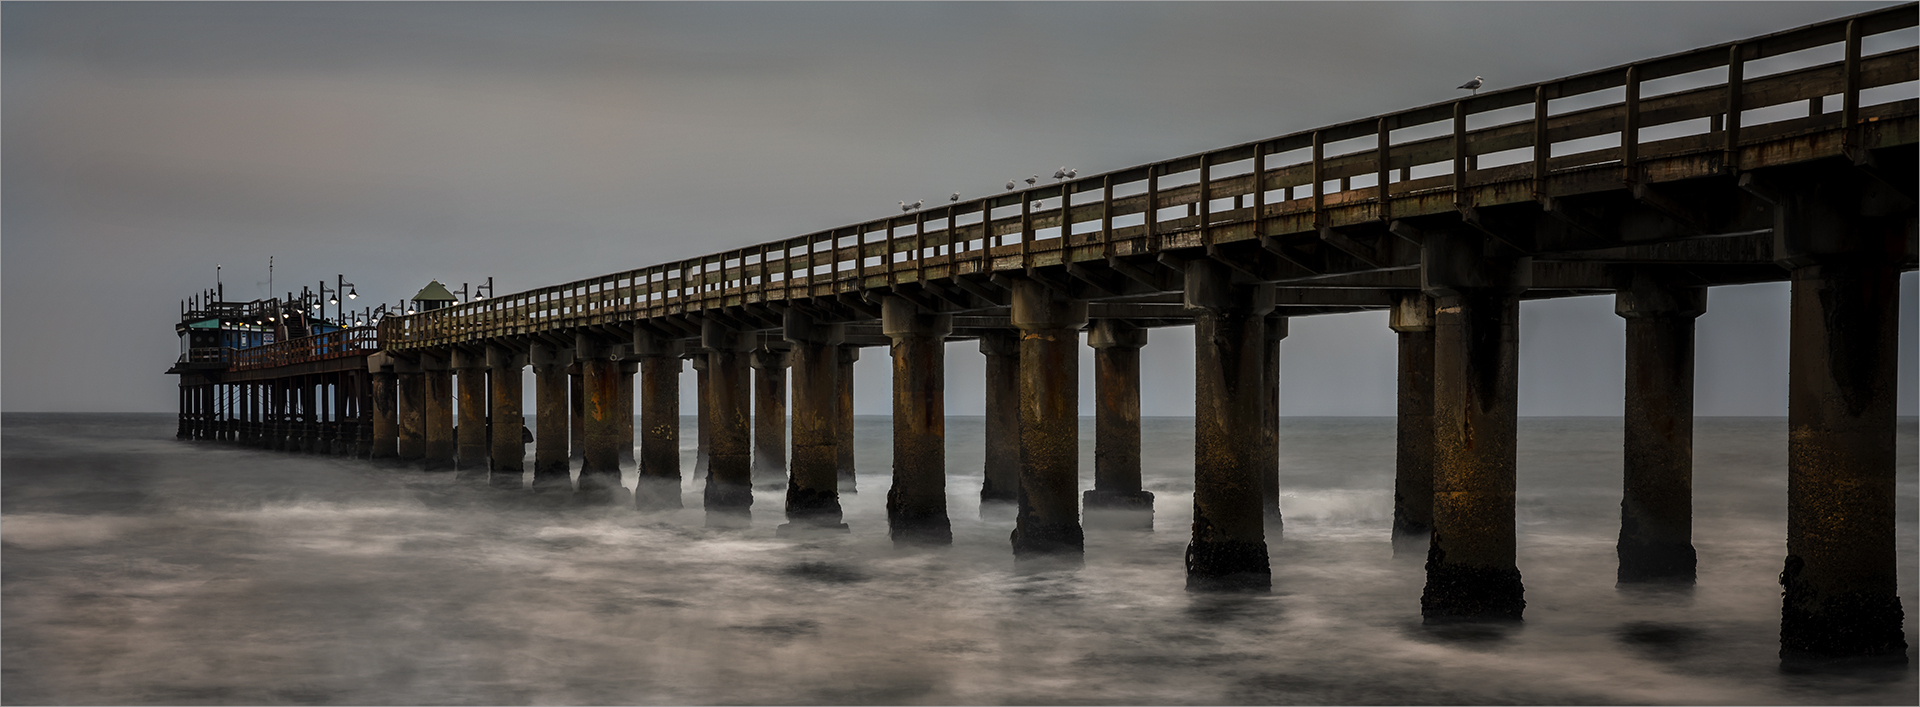 Cloudy evening at Swakop Pier-Russell Ja